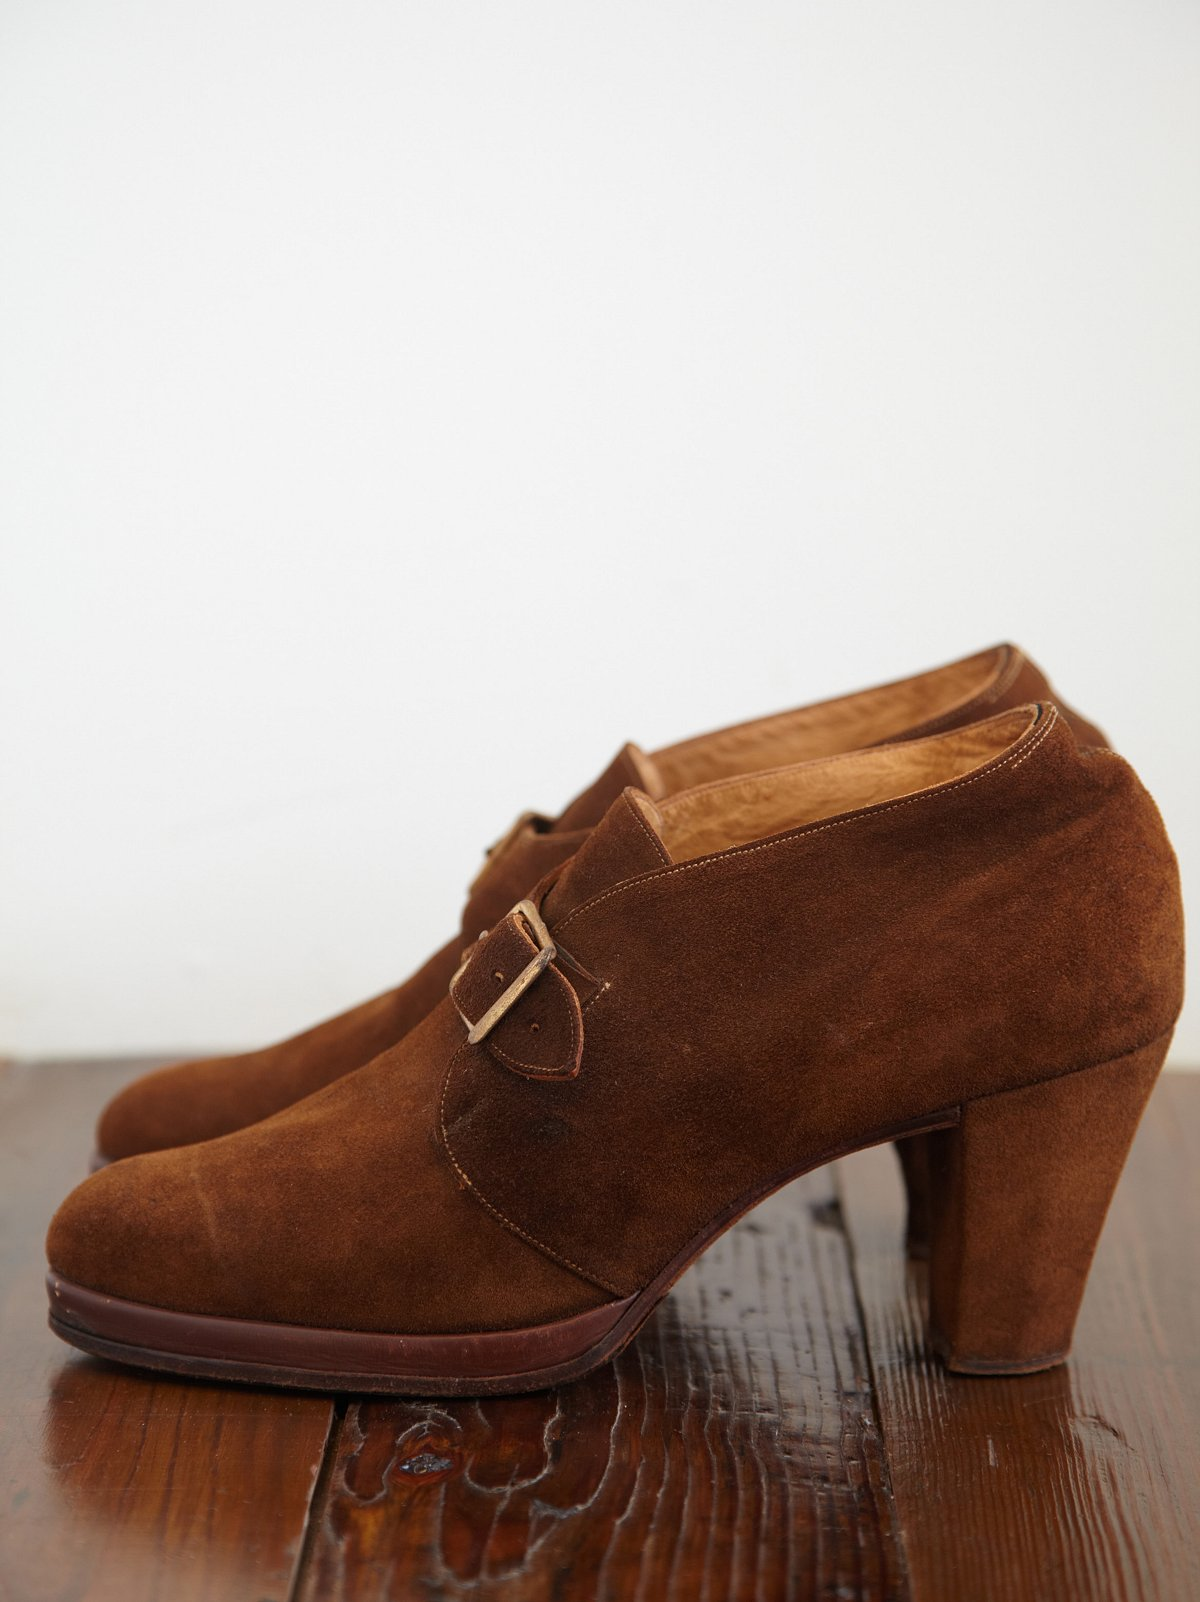 Vintage Suede Buckle Booties